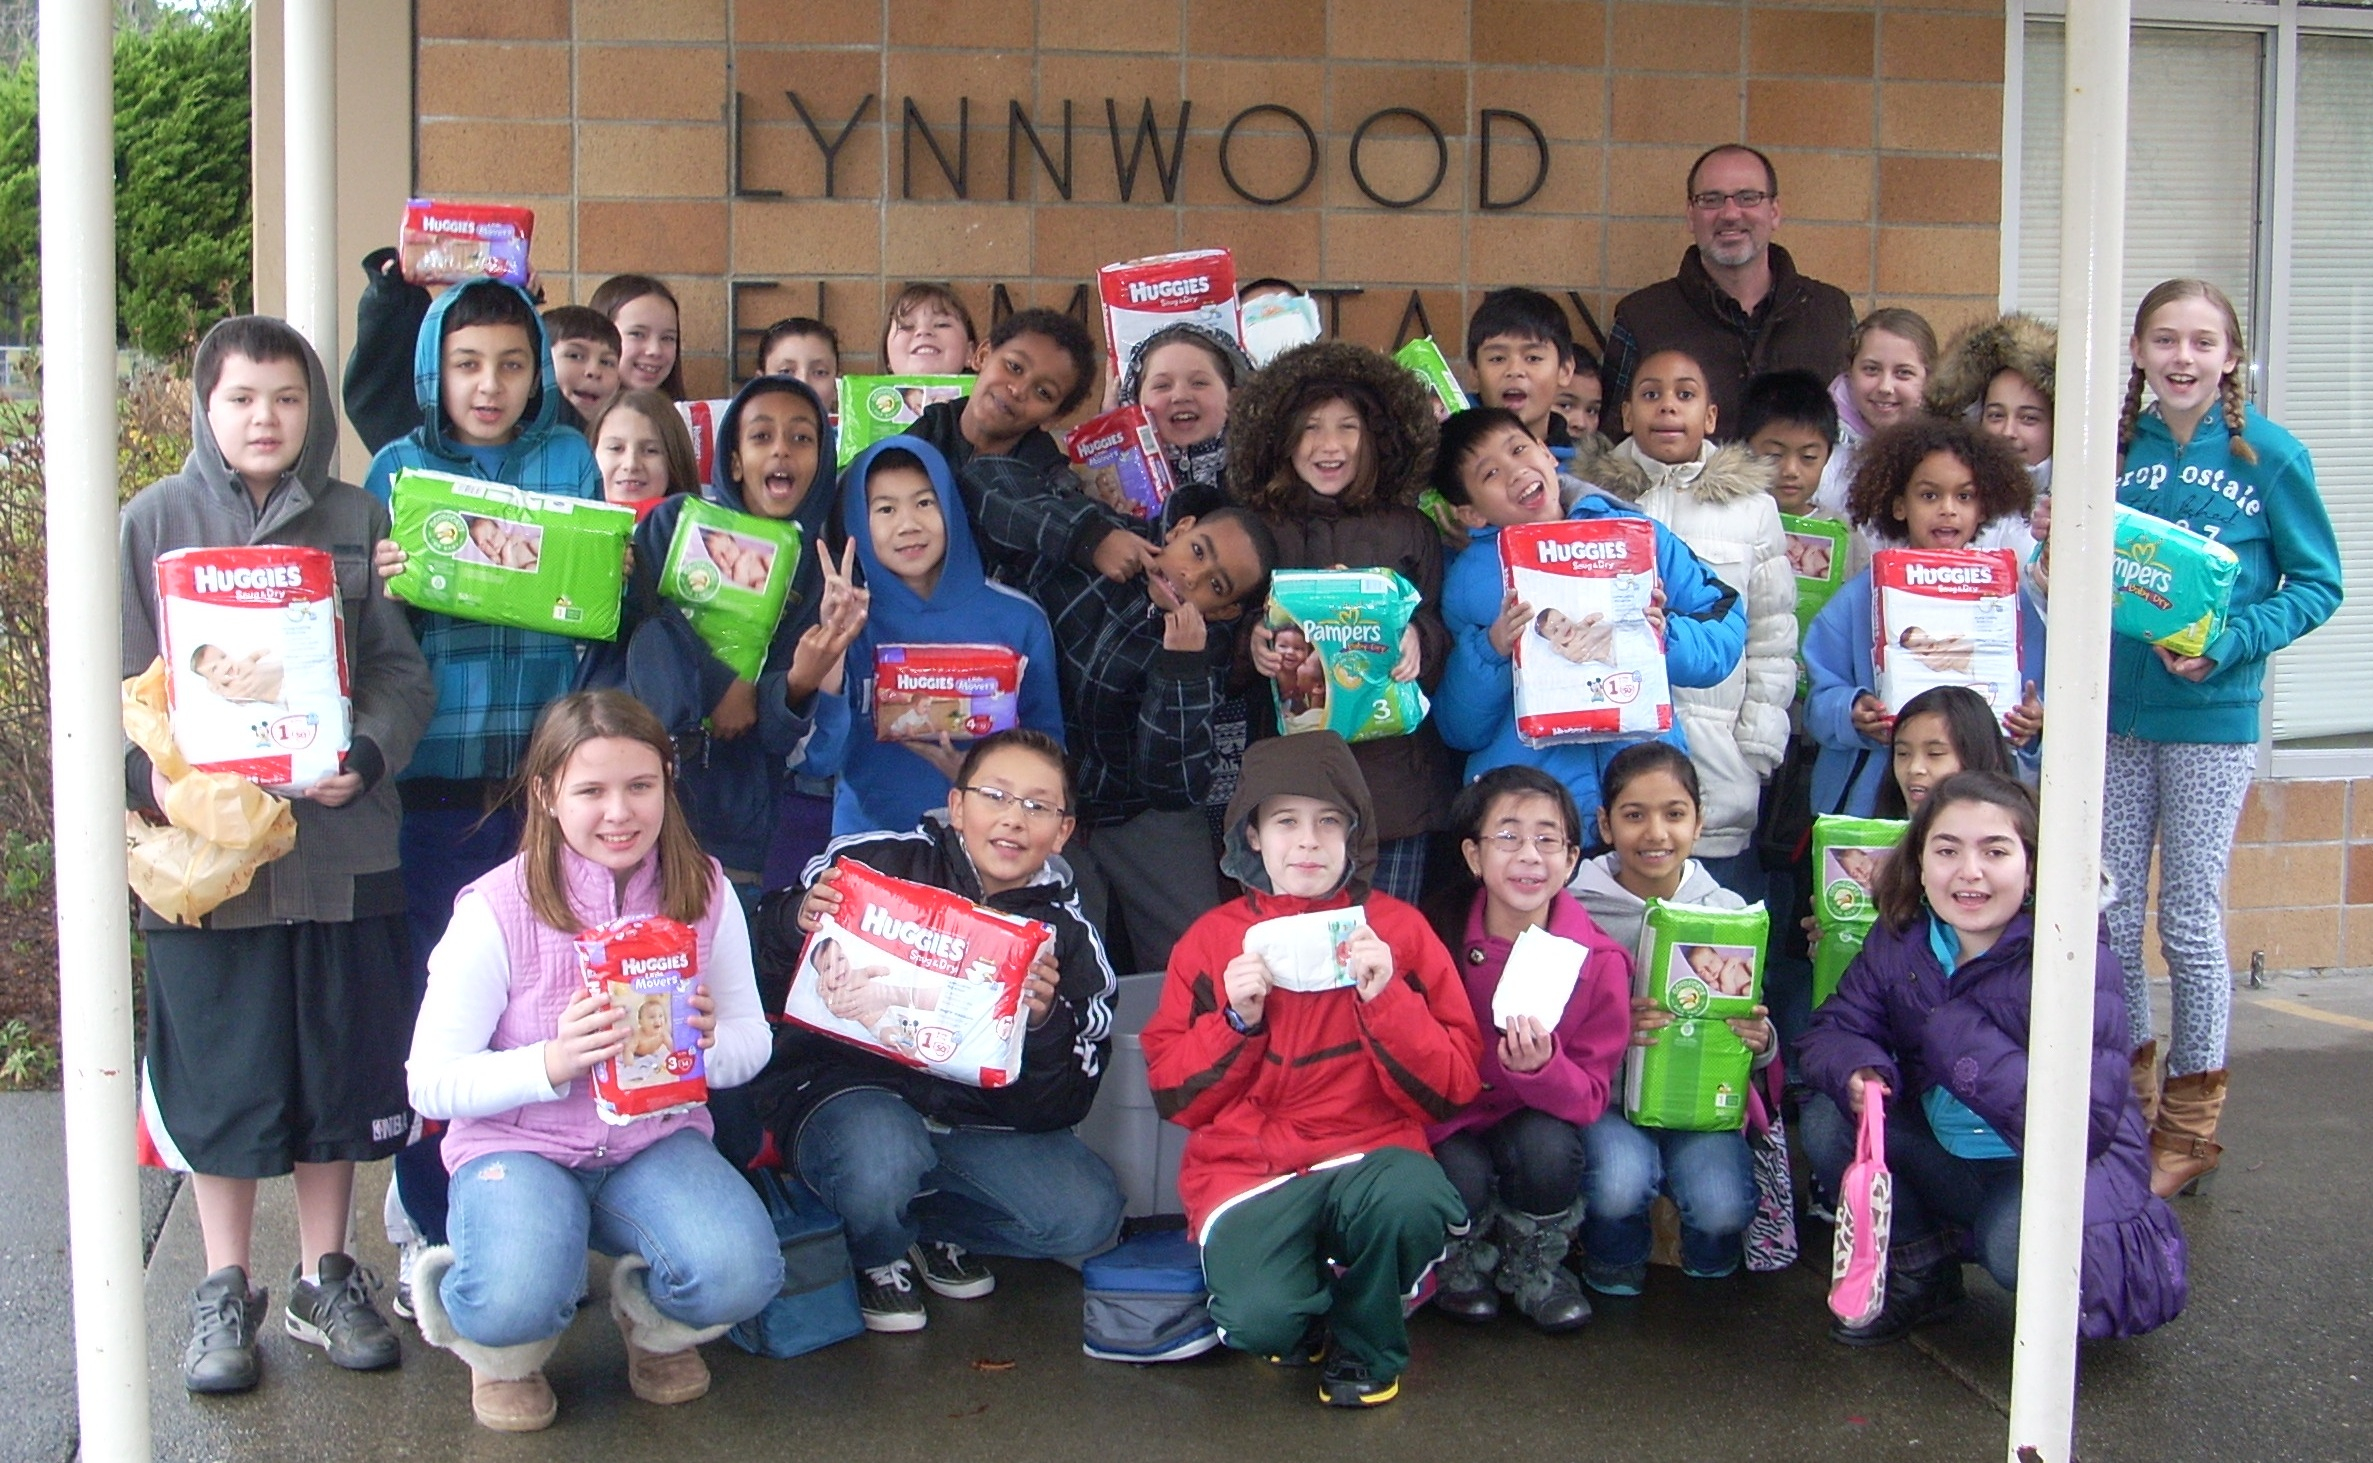 Isabelle and Lynnwood Elementary Class January 2013.jpg